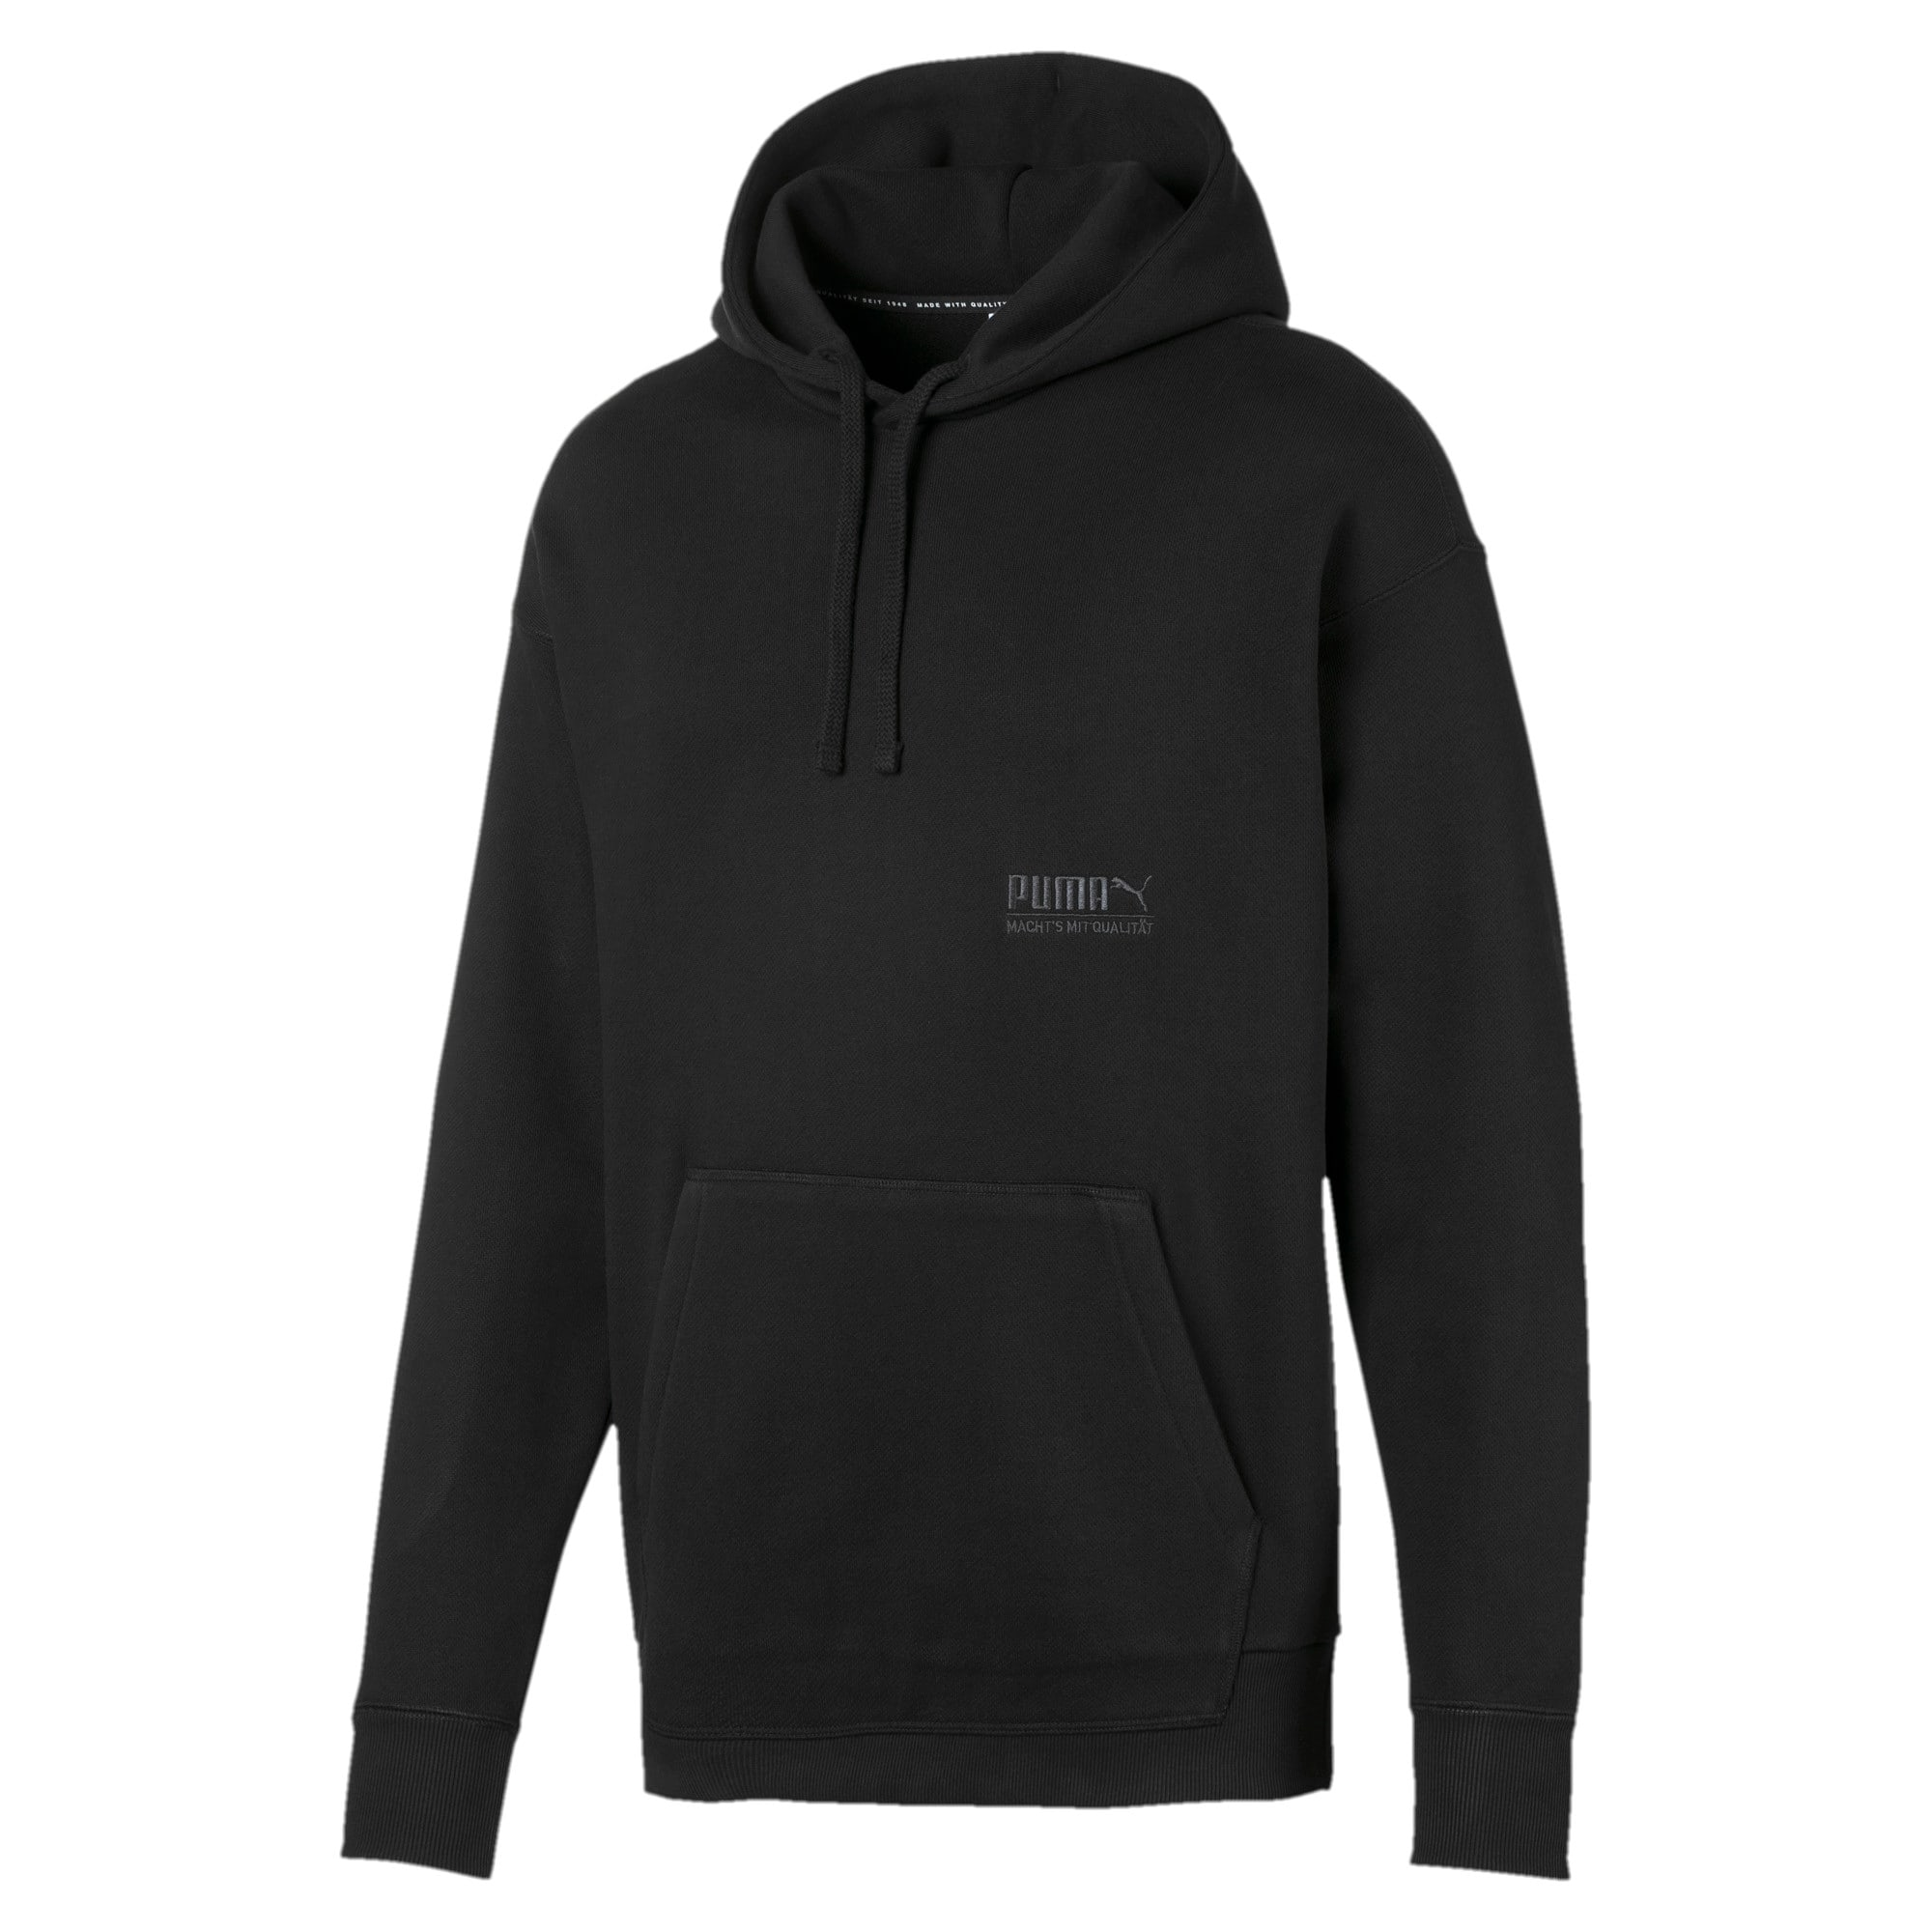 Thumbnail 1 of Heavy Classics hoodie voor heren, Cotton Black, medium